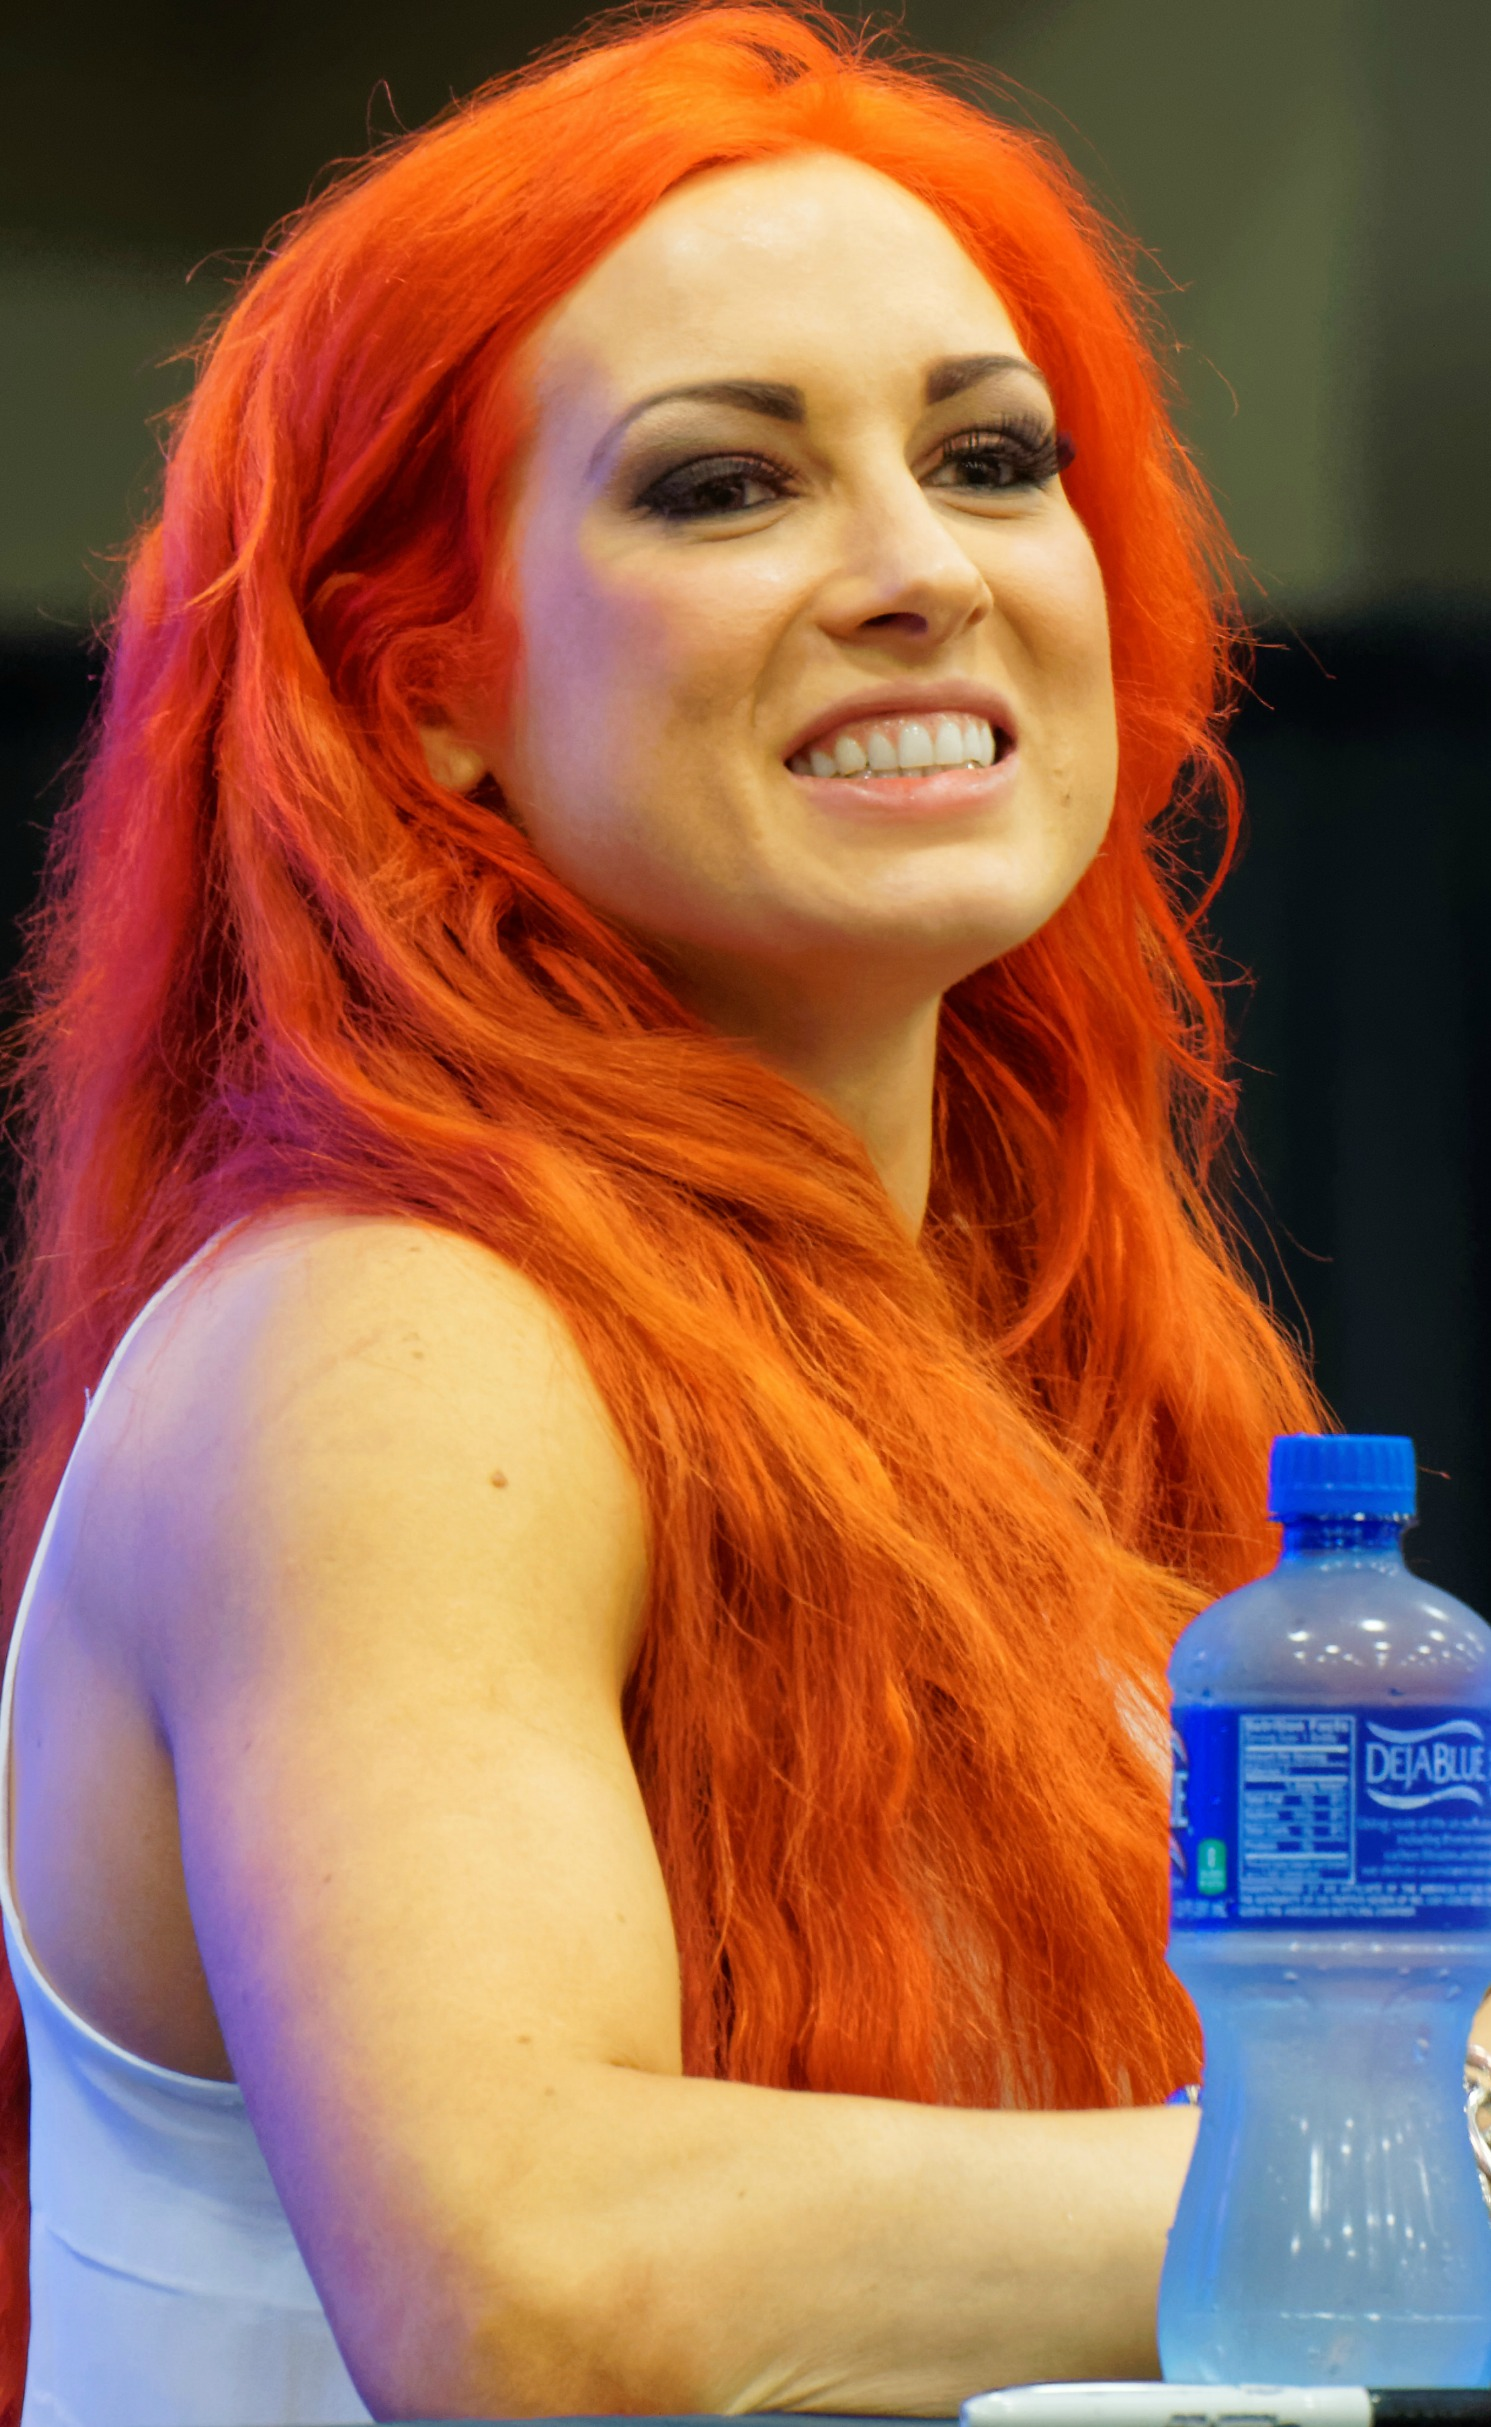 becky lynch wikipedia